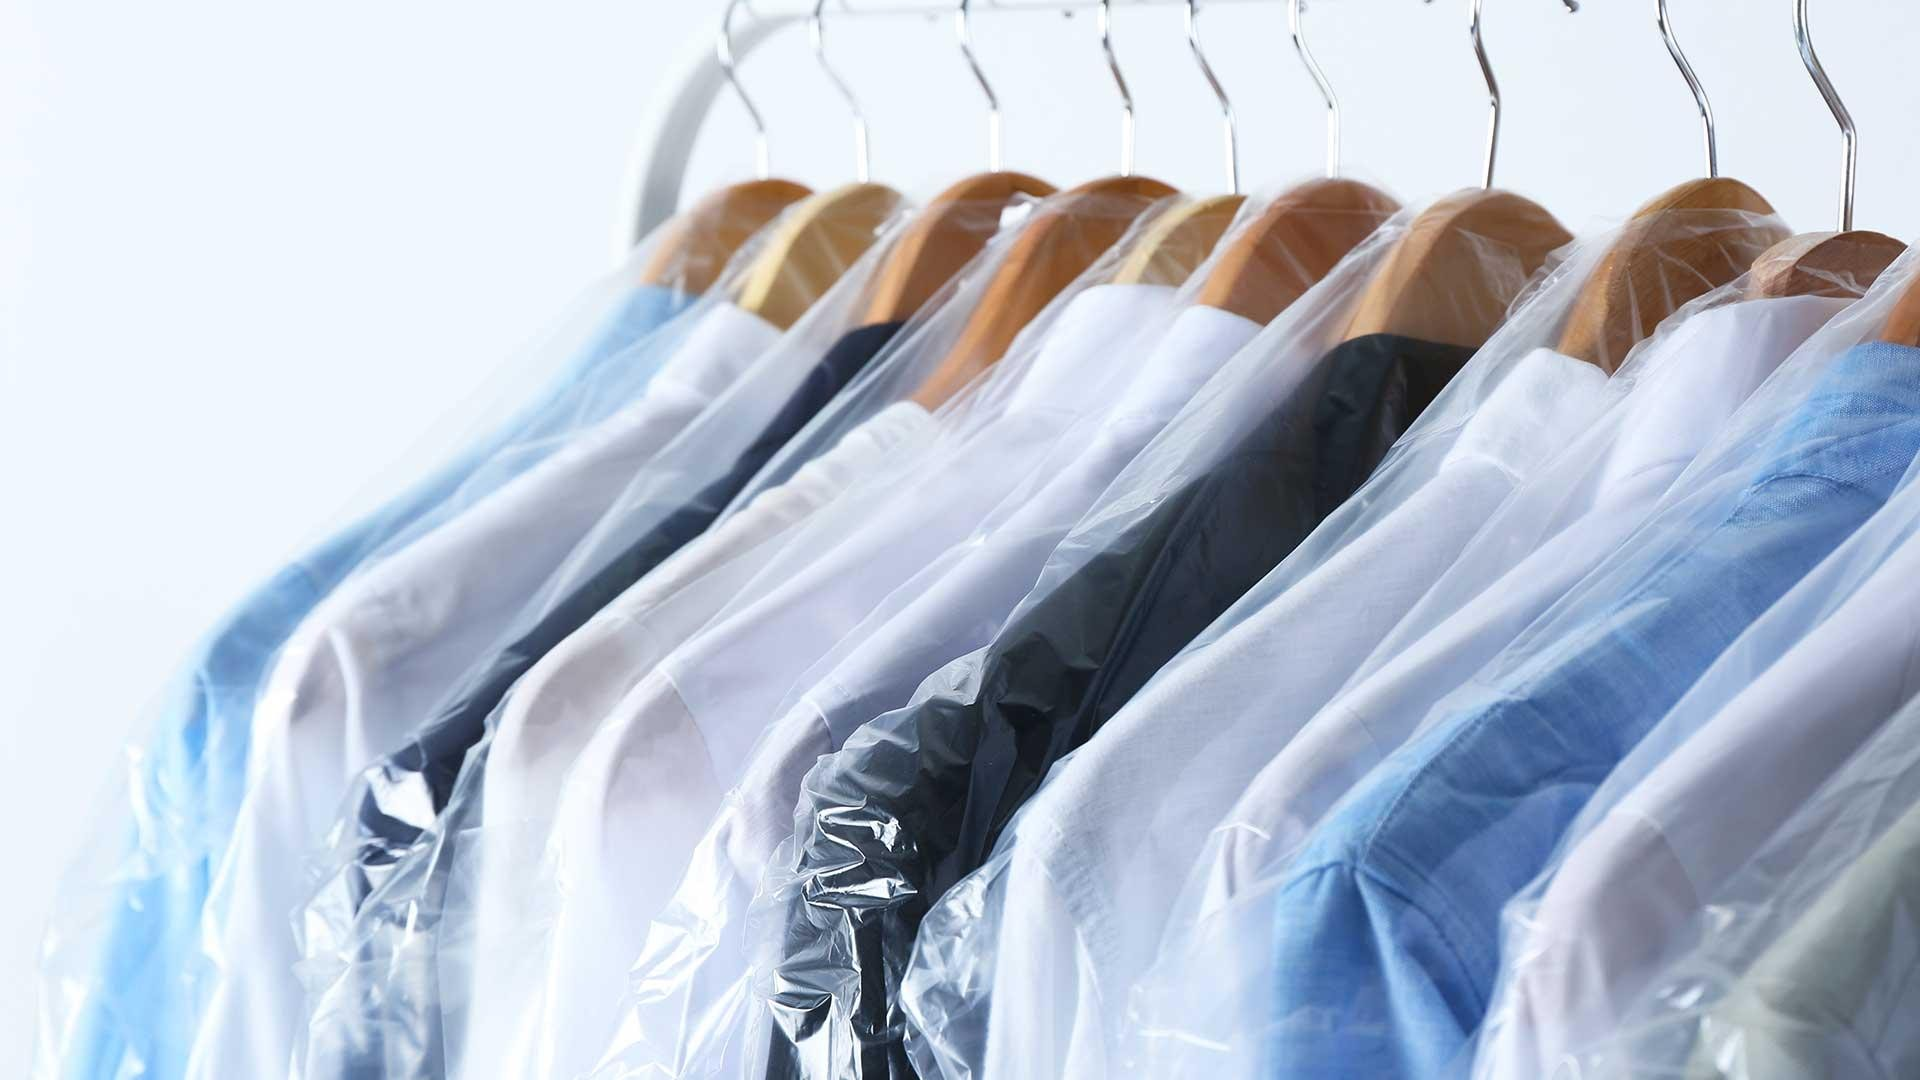 dry-cleaning-business-np-151k-est-25-years-shopping-mall-0